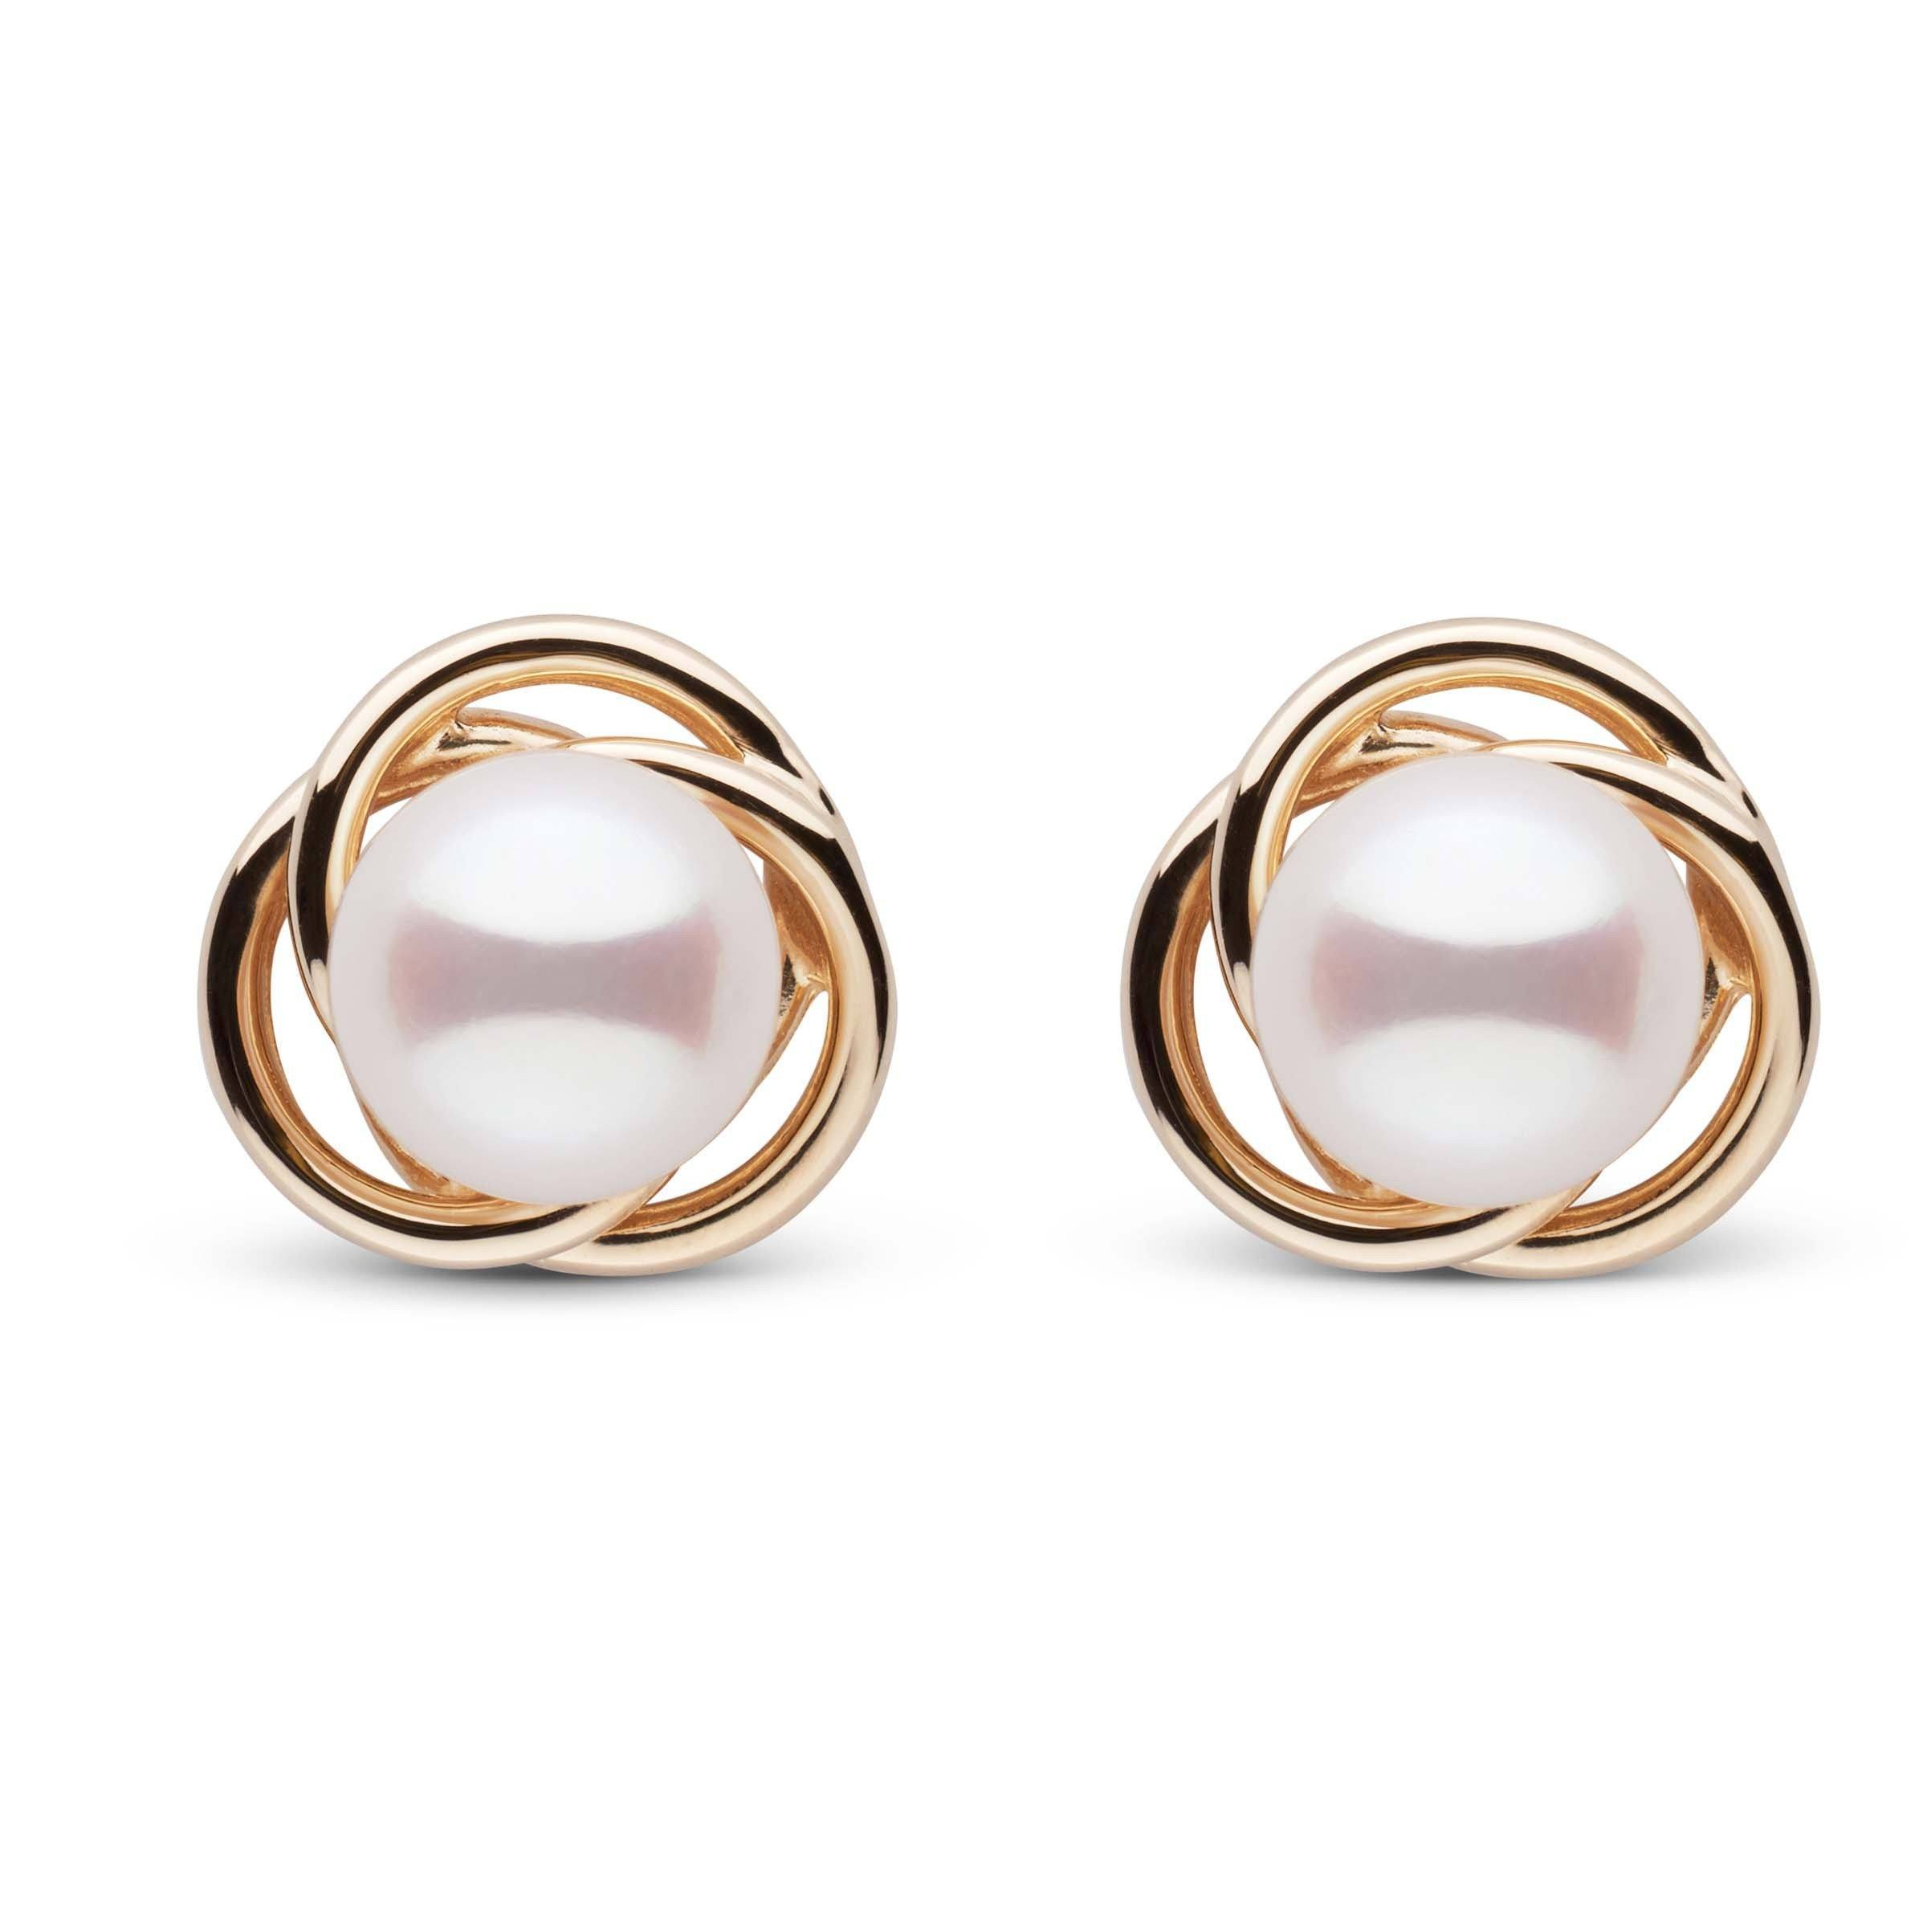 Trilogy Collection White Akoya Pearl Earrings